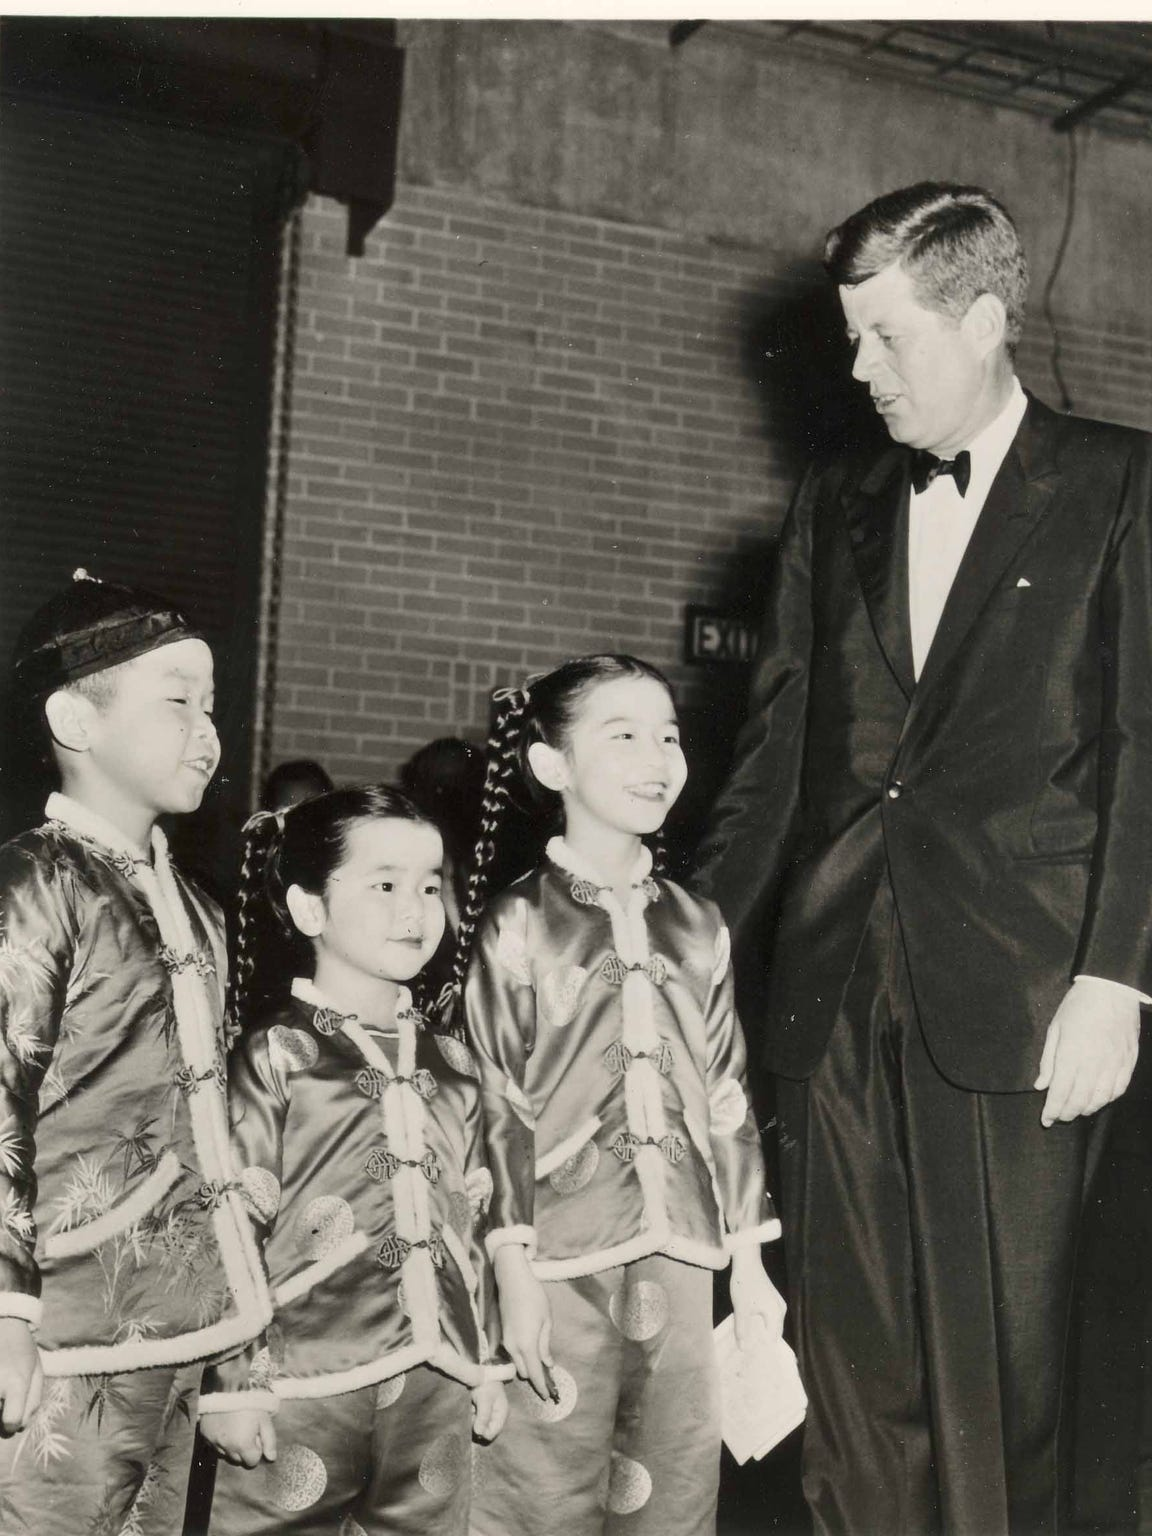 Pres. John F. Kennedy in tuxedo with 3 cast members